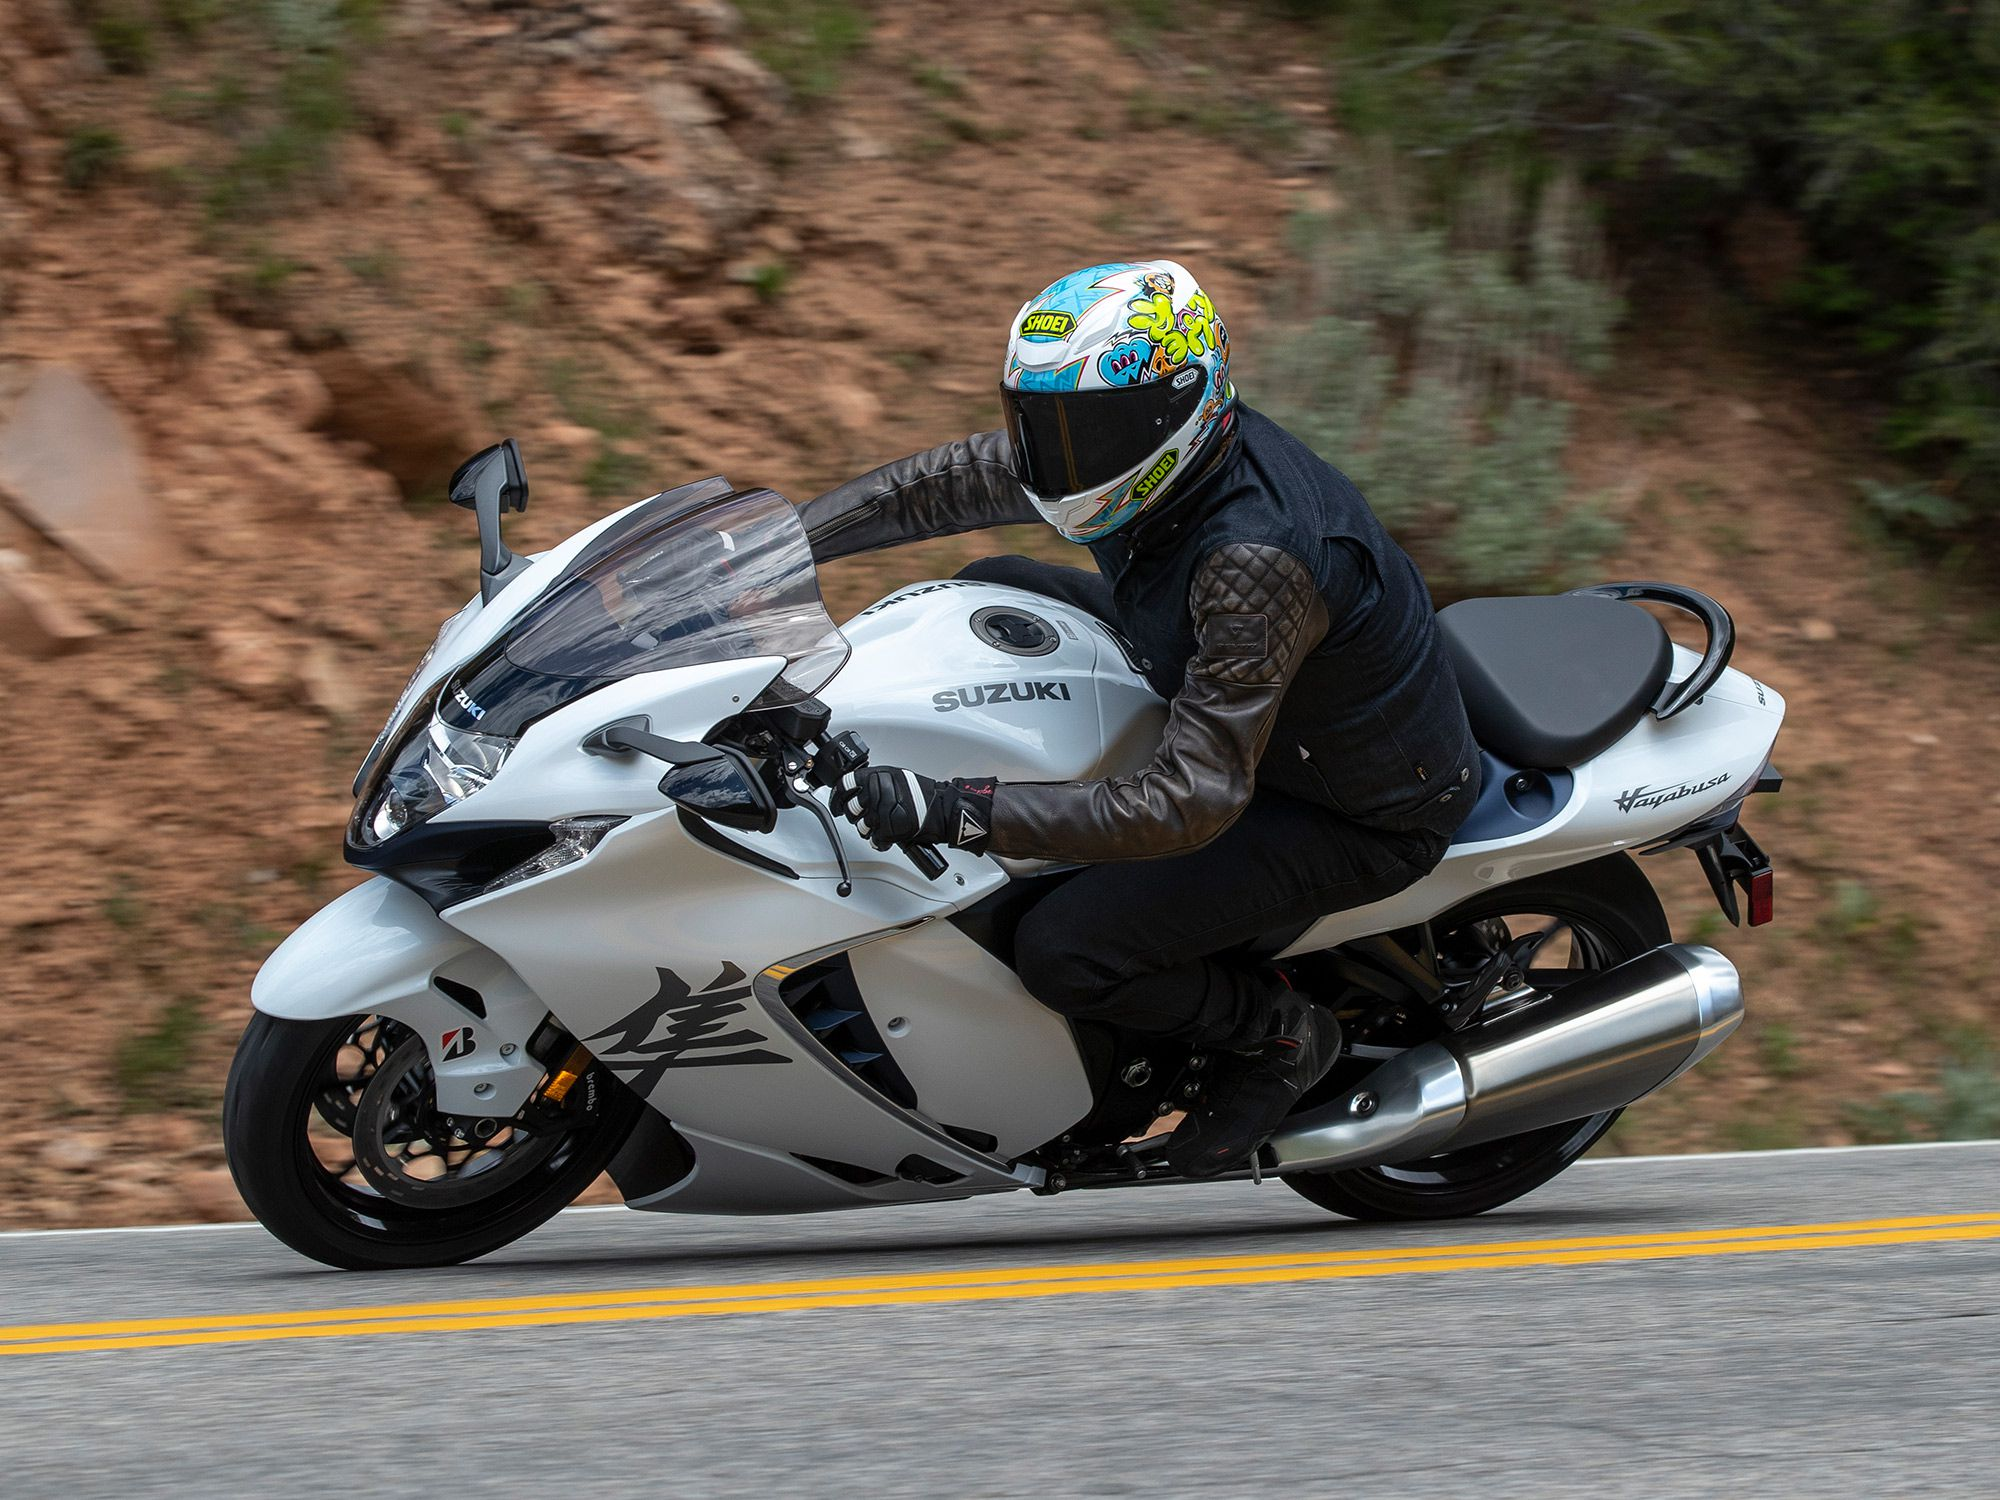 Suzuki joins the modern sportbike era with a suite of electronic rider aids. The electronics are easy to setup and allow the Hayabusa to go from mild to wild with a push of a button.